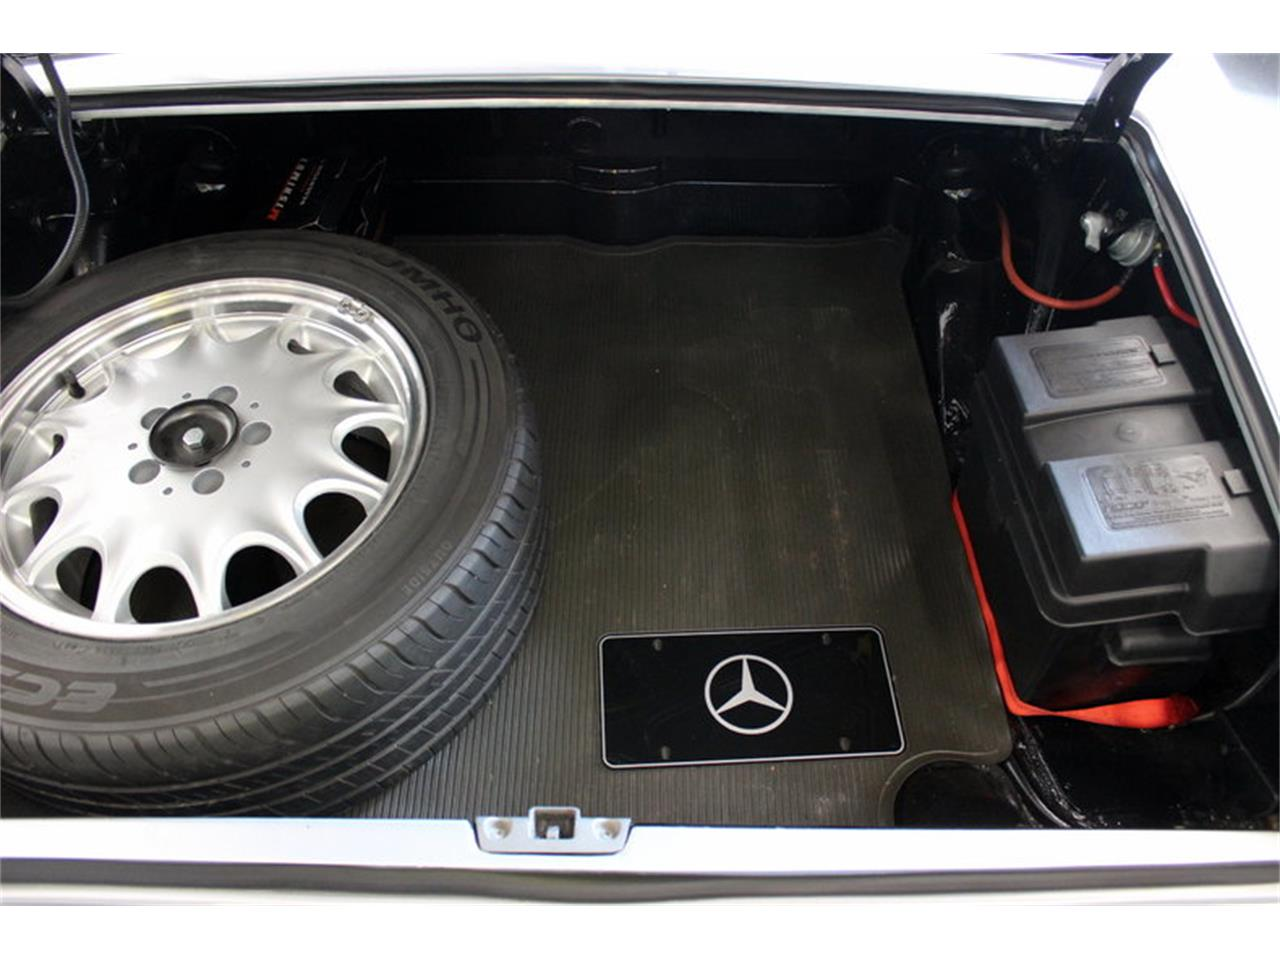 Large Picture of 1966 Mercedes-Benz 230SL located in Texas - $79,995.00 - LGBX